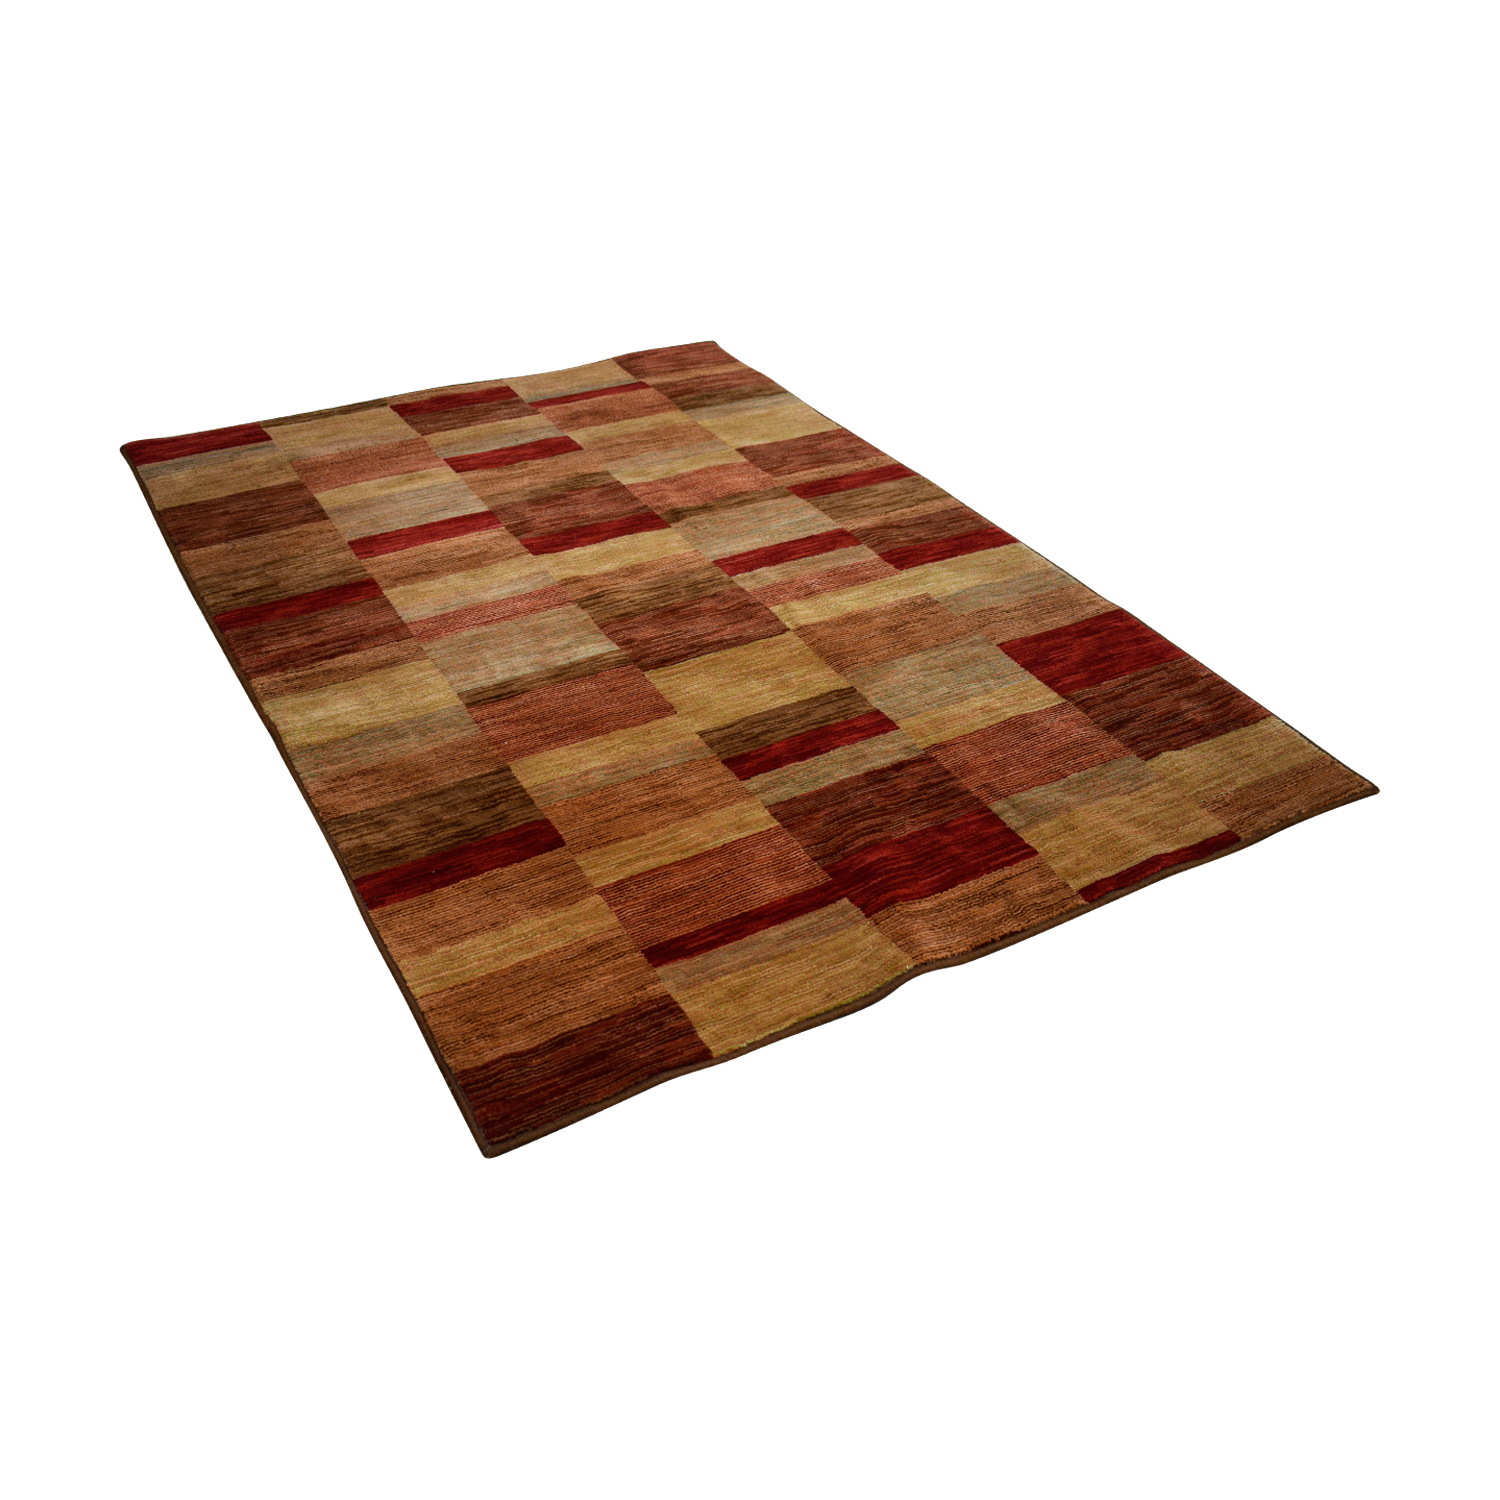 Raymour & Flanigan Raymour & Flanigan Shaw Living Burgundy Tan and Brown Rug nj